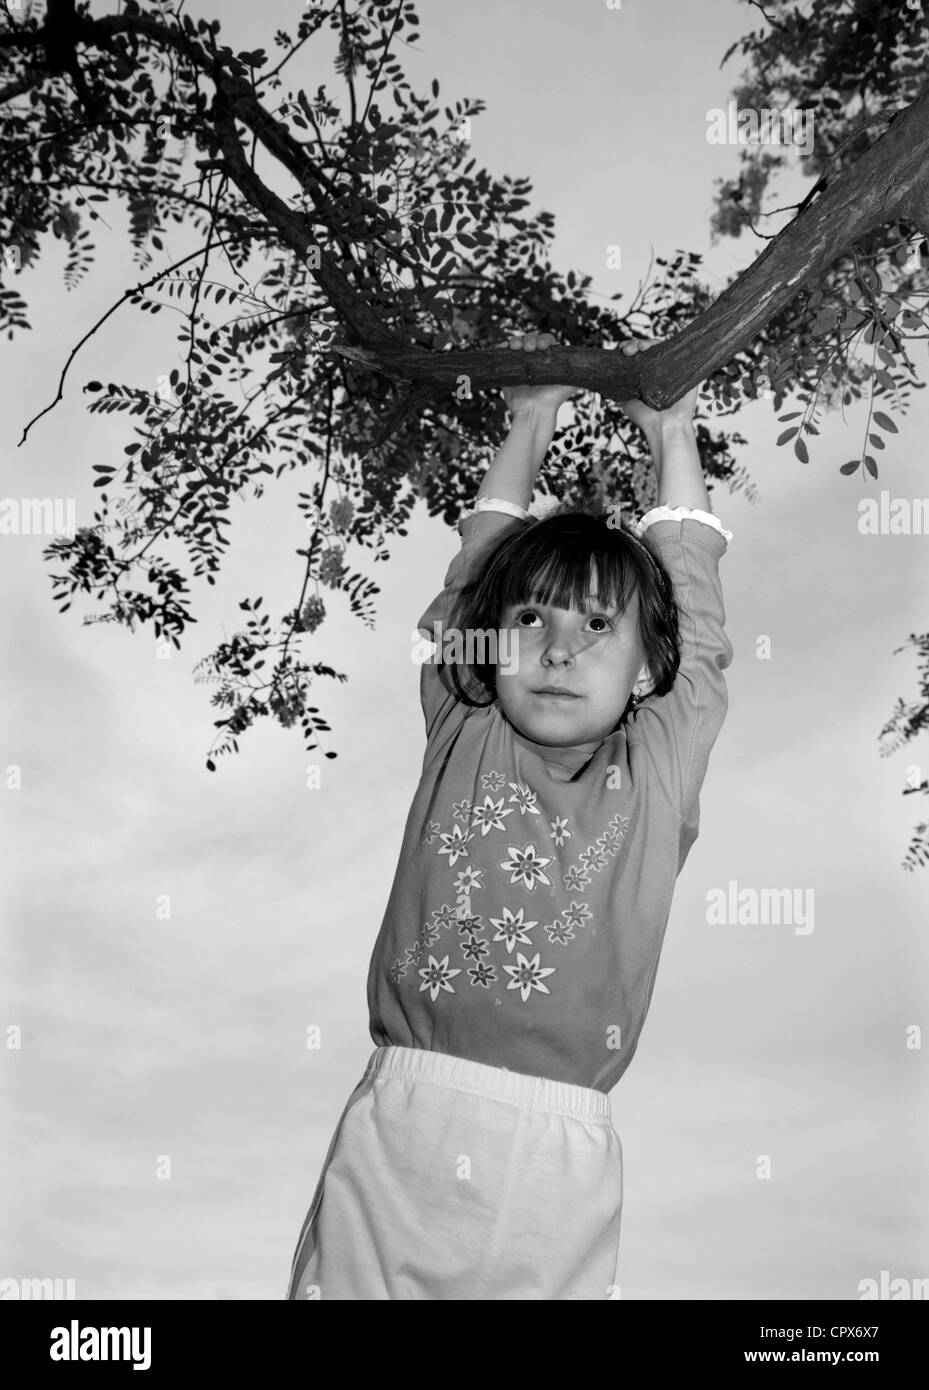 little girl and the tree limb - Stock Image